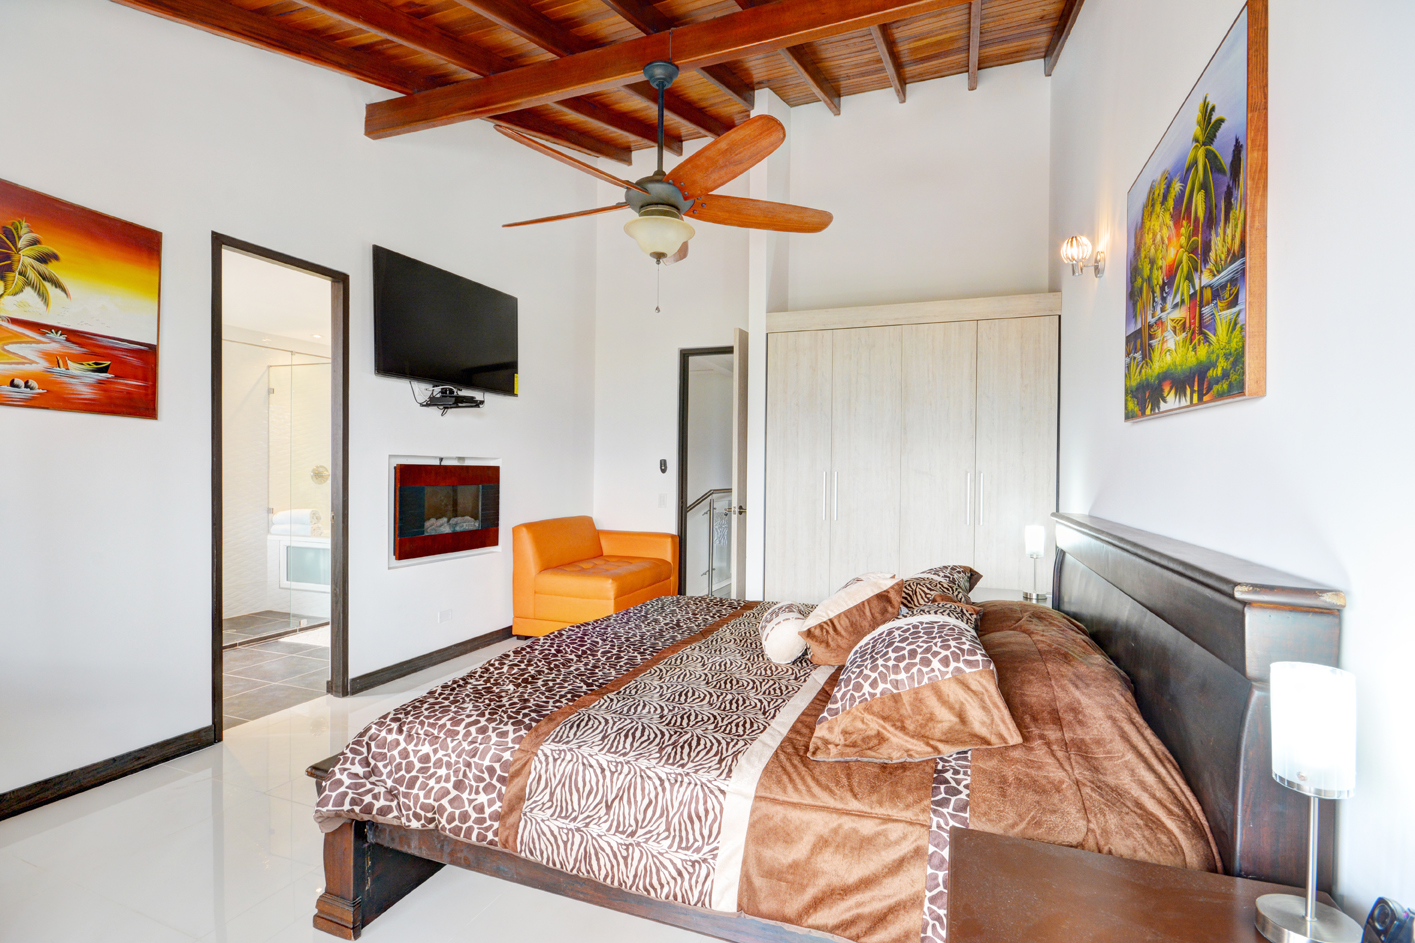 Bedroom 1 with wide screen TV, fireplace and ensuite bathroom in Astorga duplex